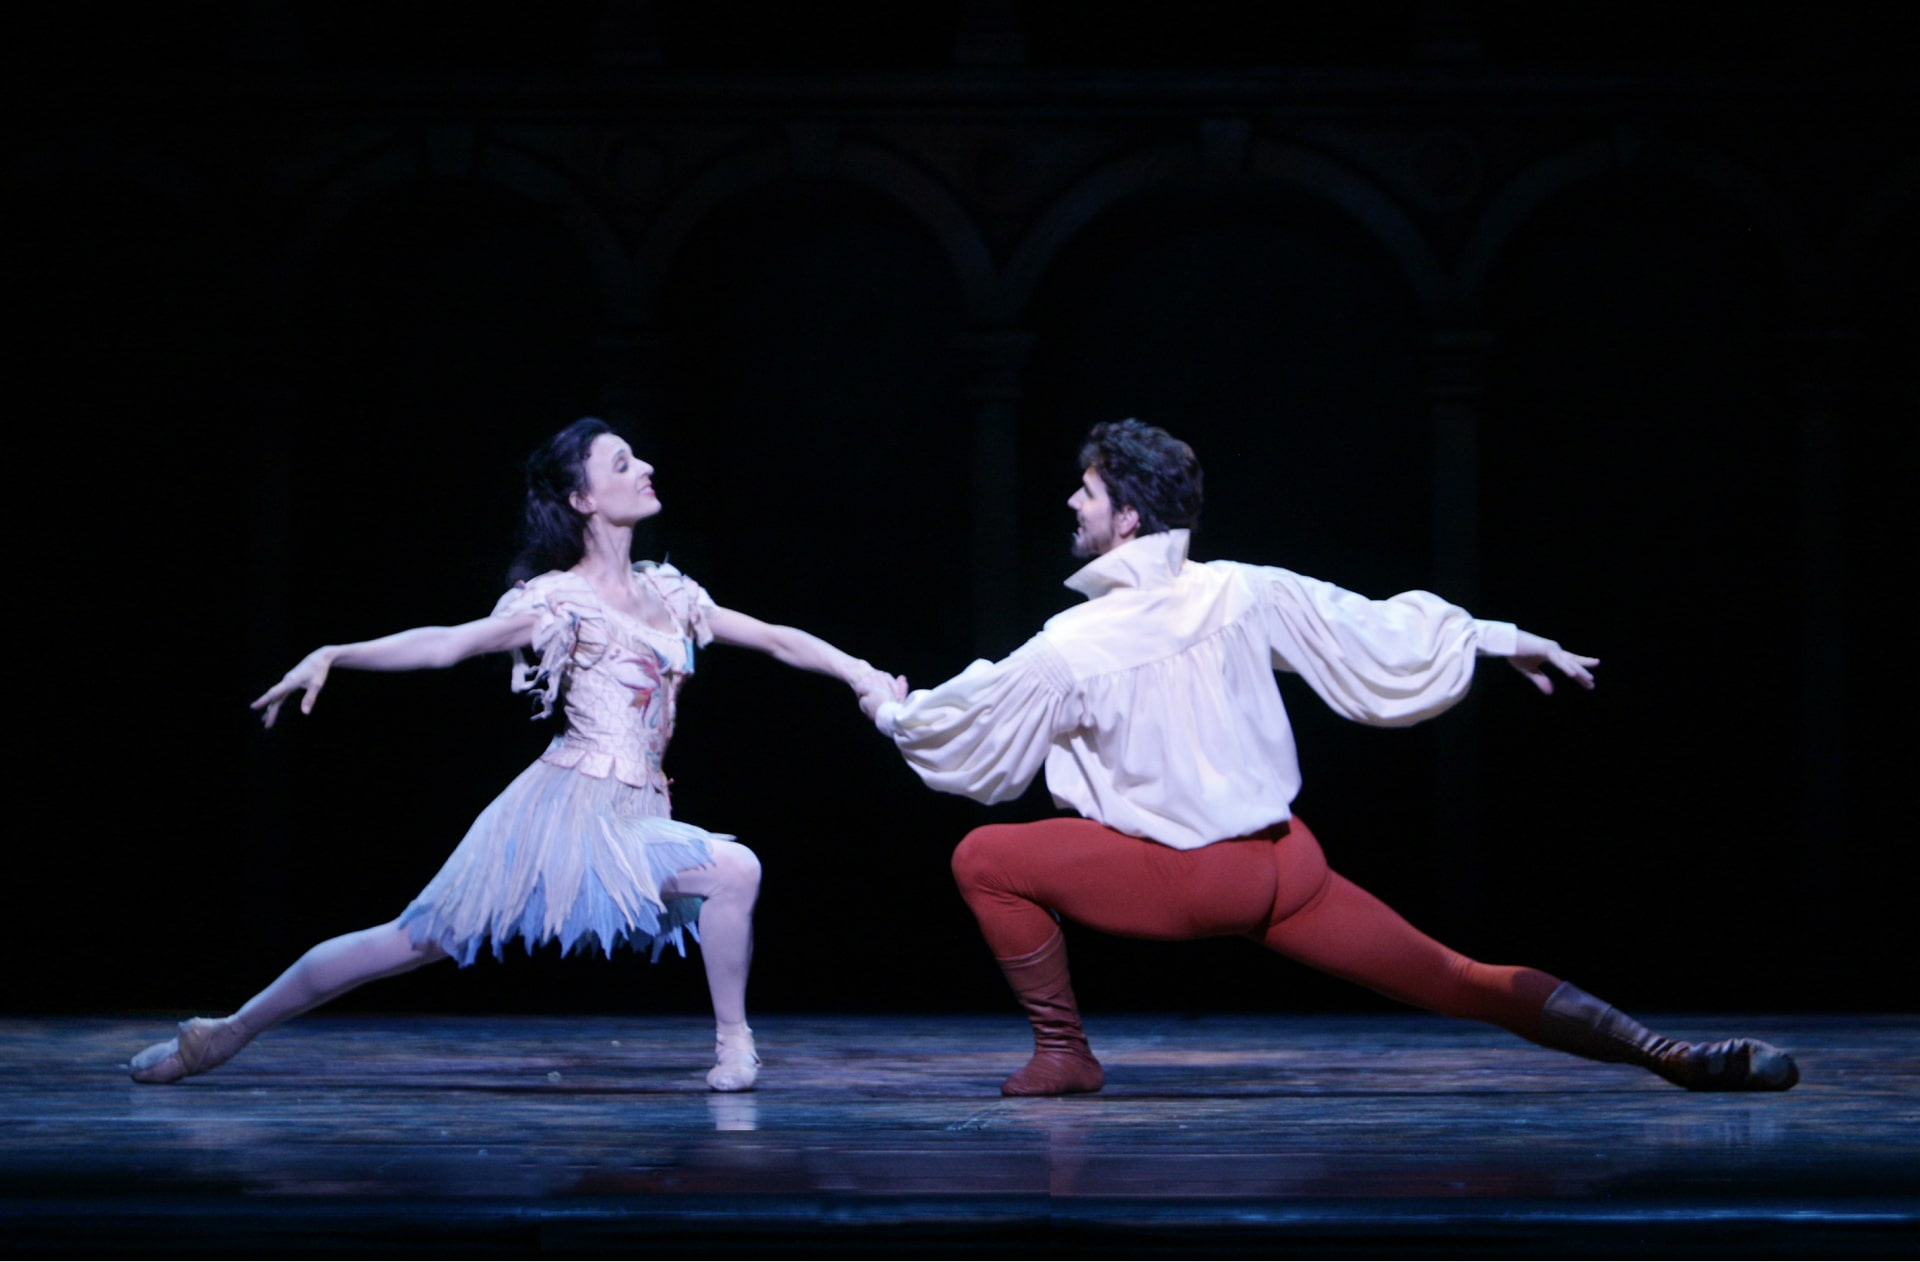 Ballerina in white feathery skirt holds hands with lunging dancer in orange tights.